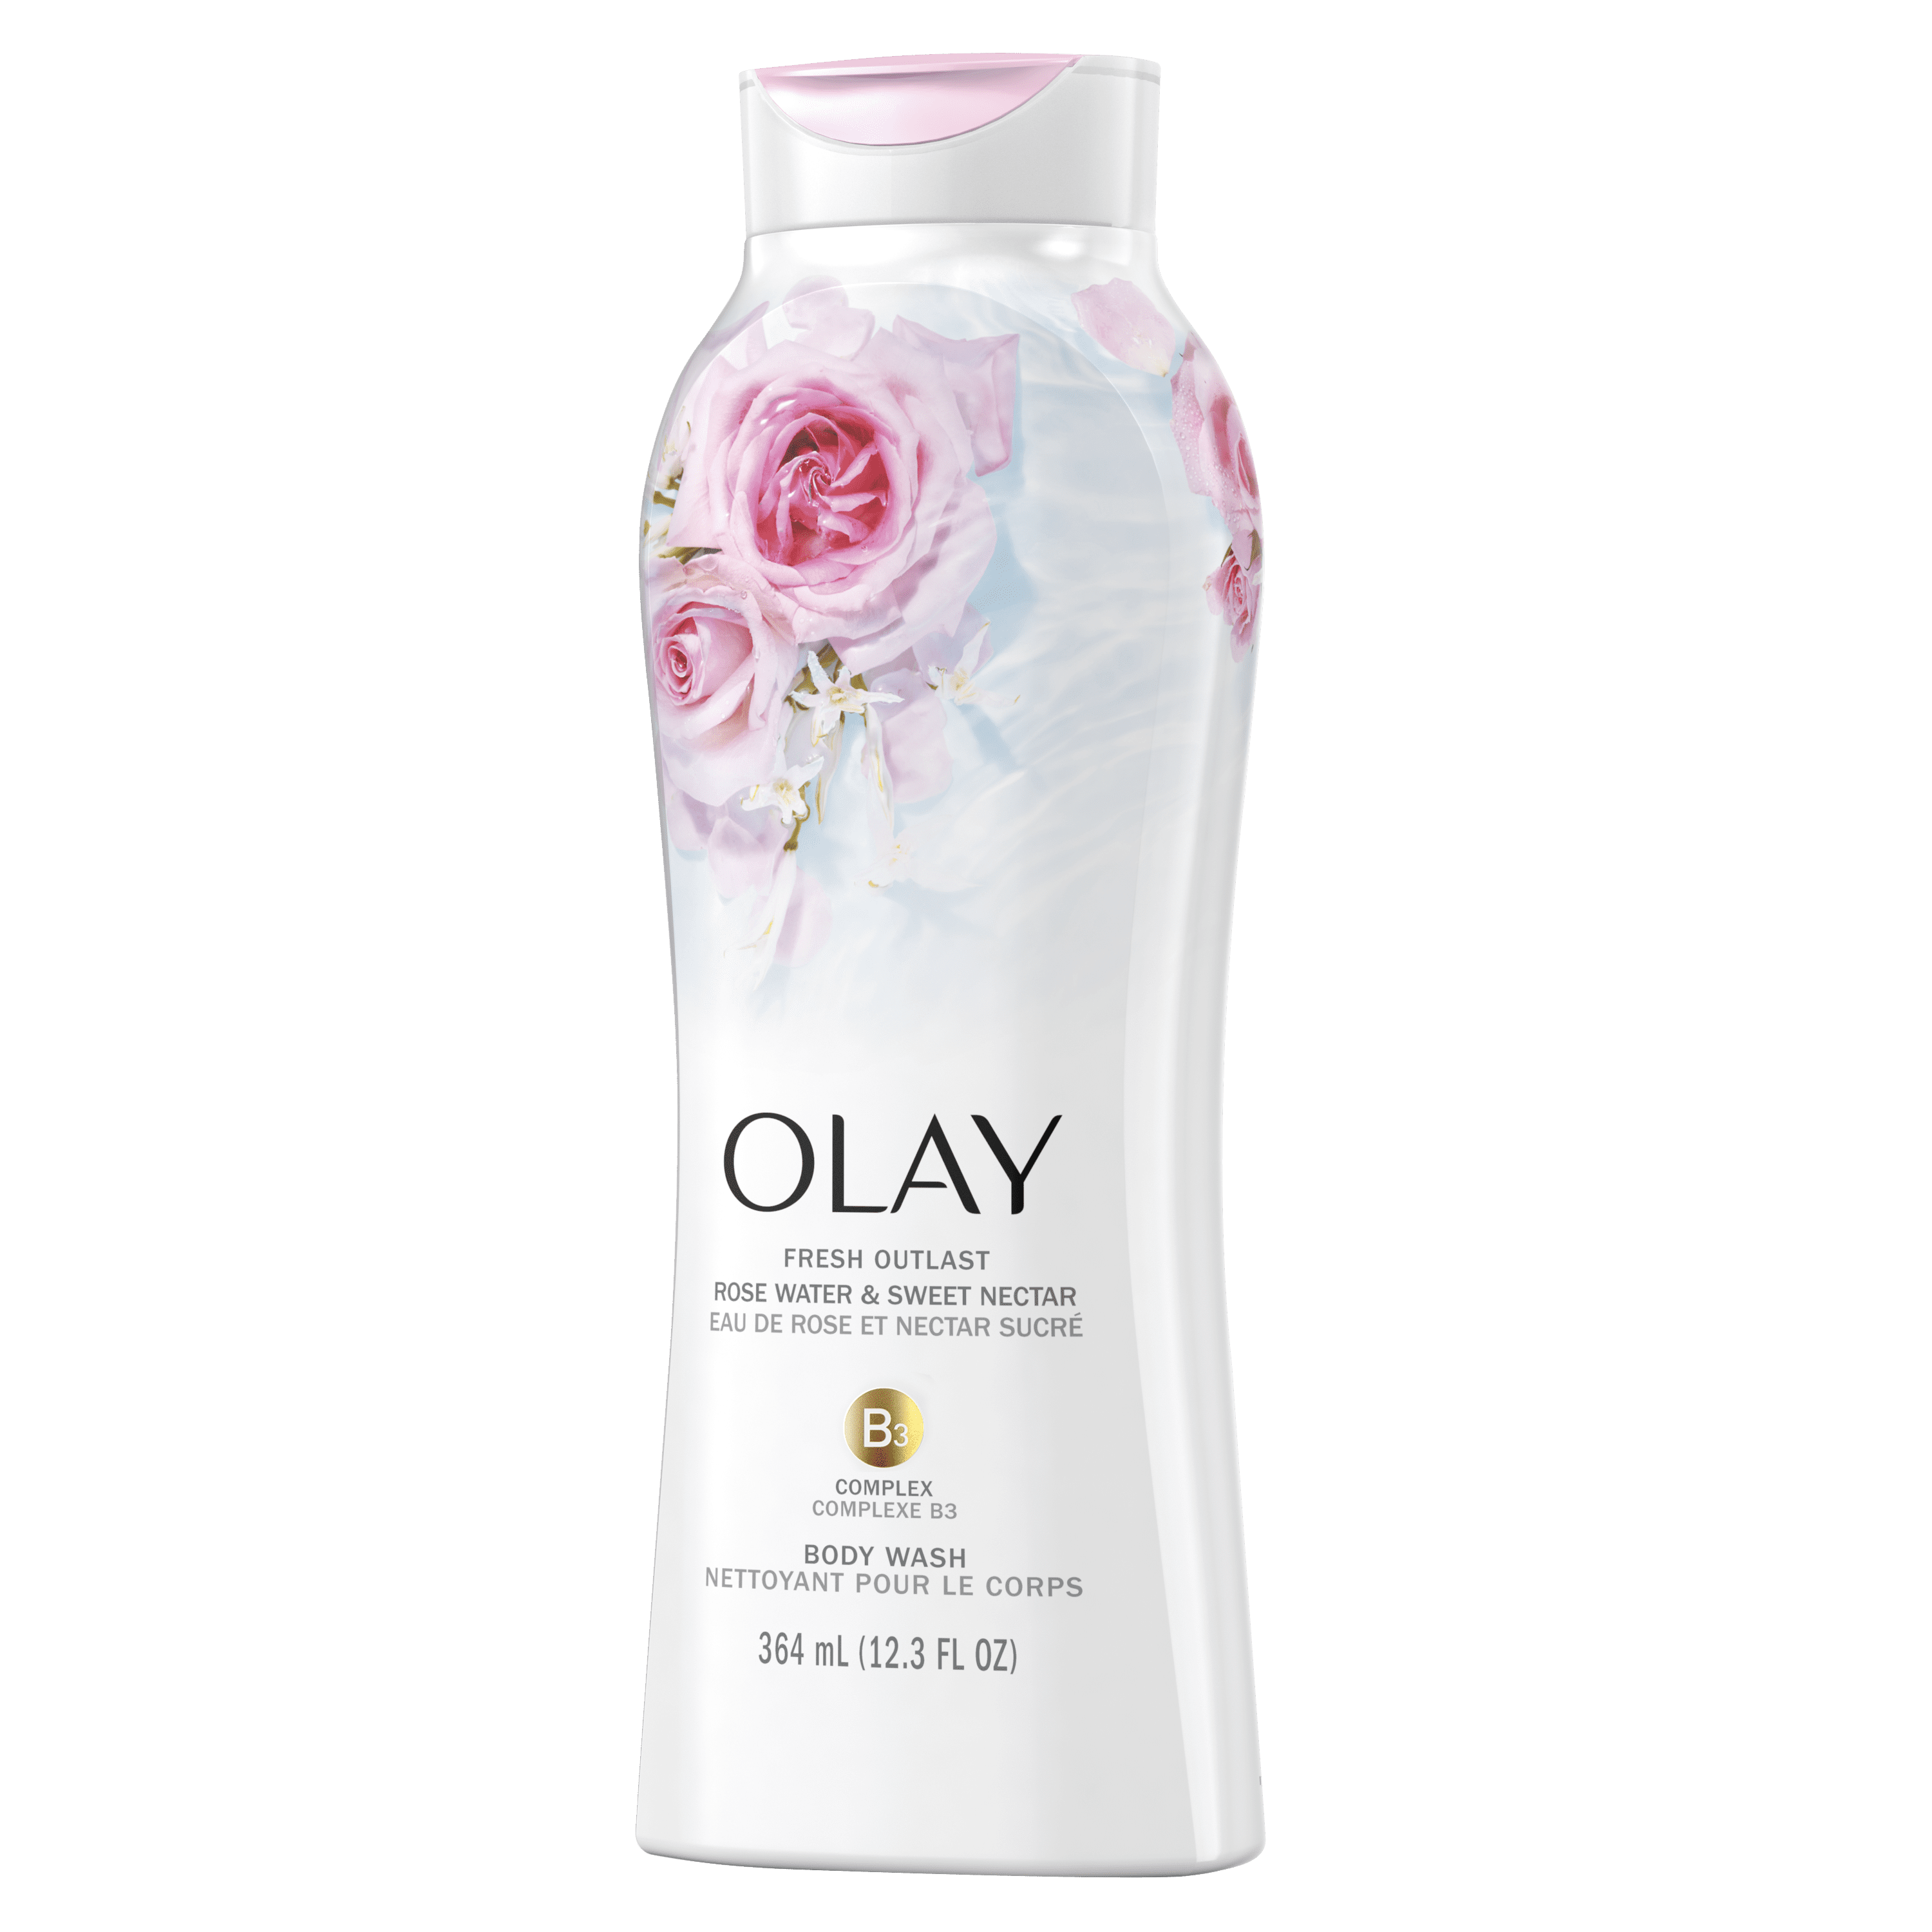 Rose Water and Sweet Nectar Fresh Outlast Body Wash_2